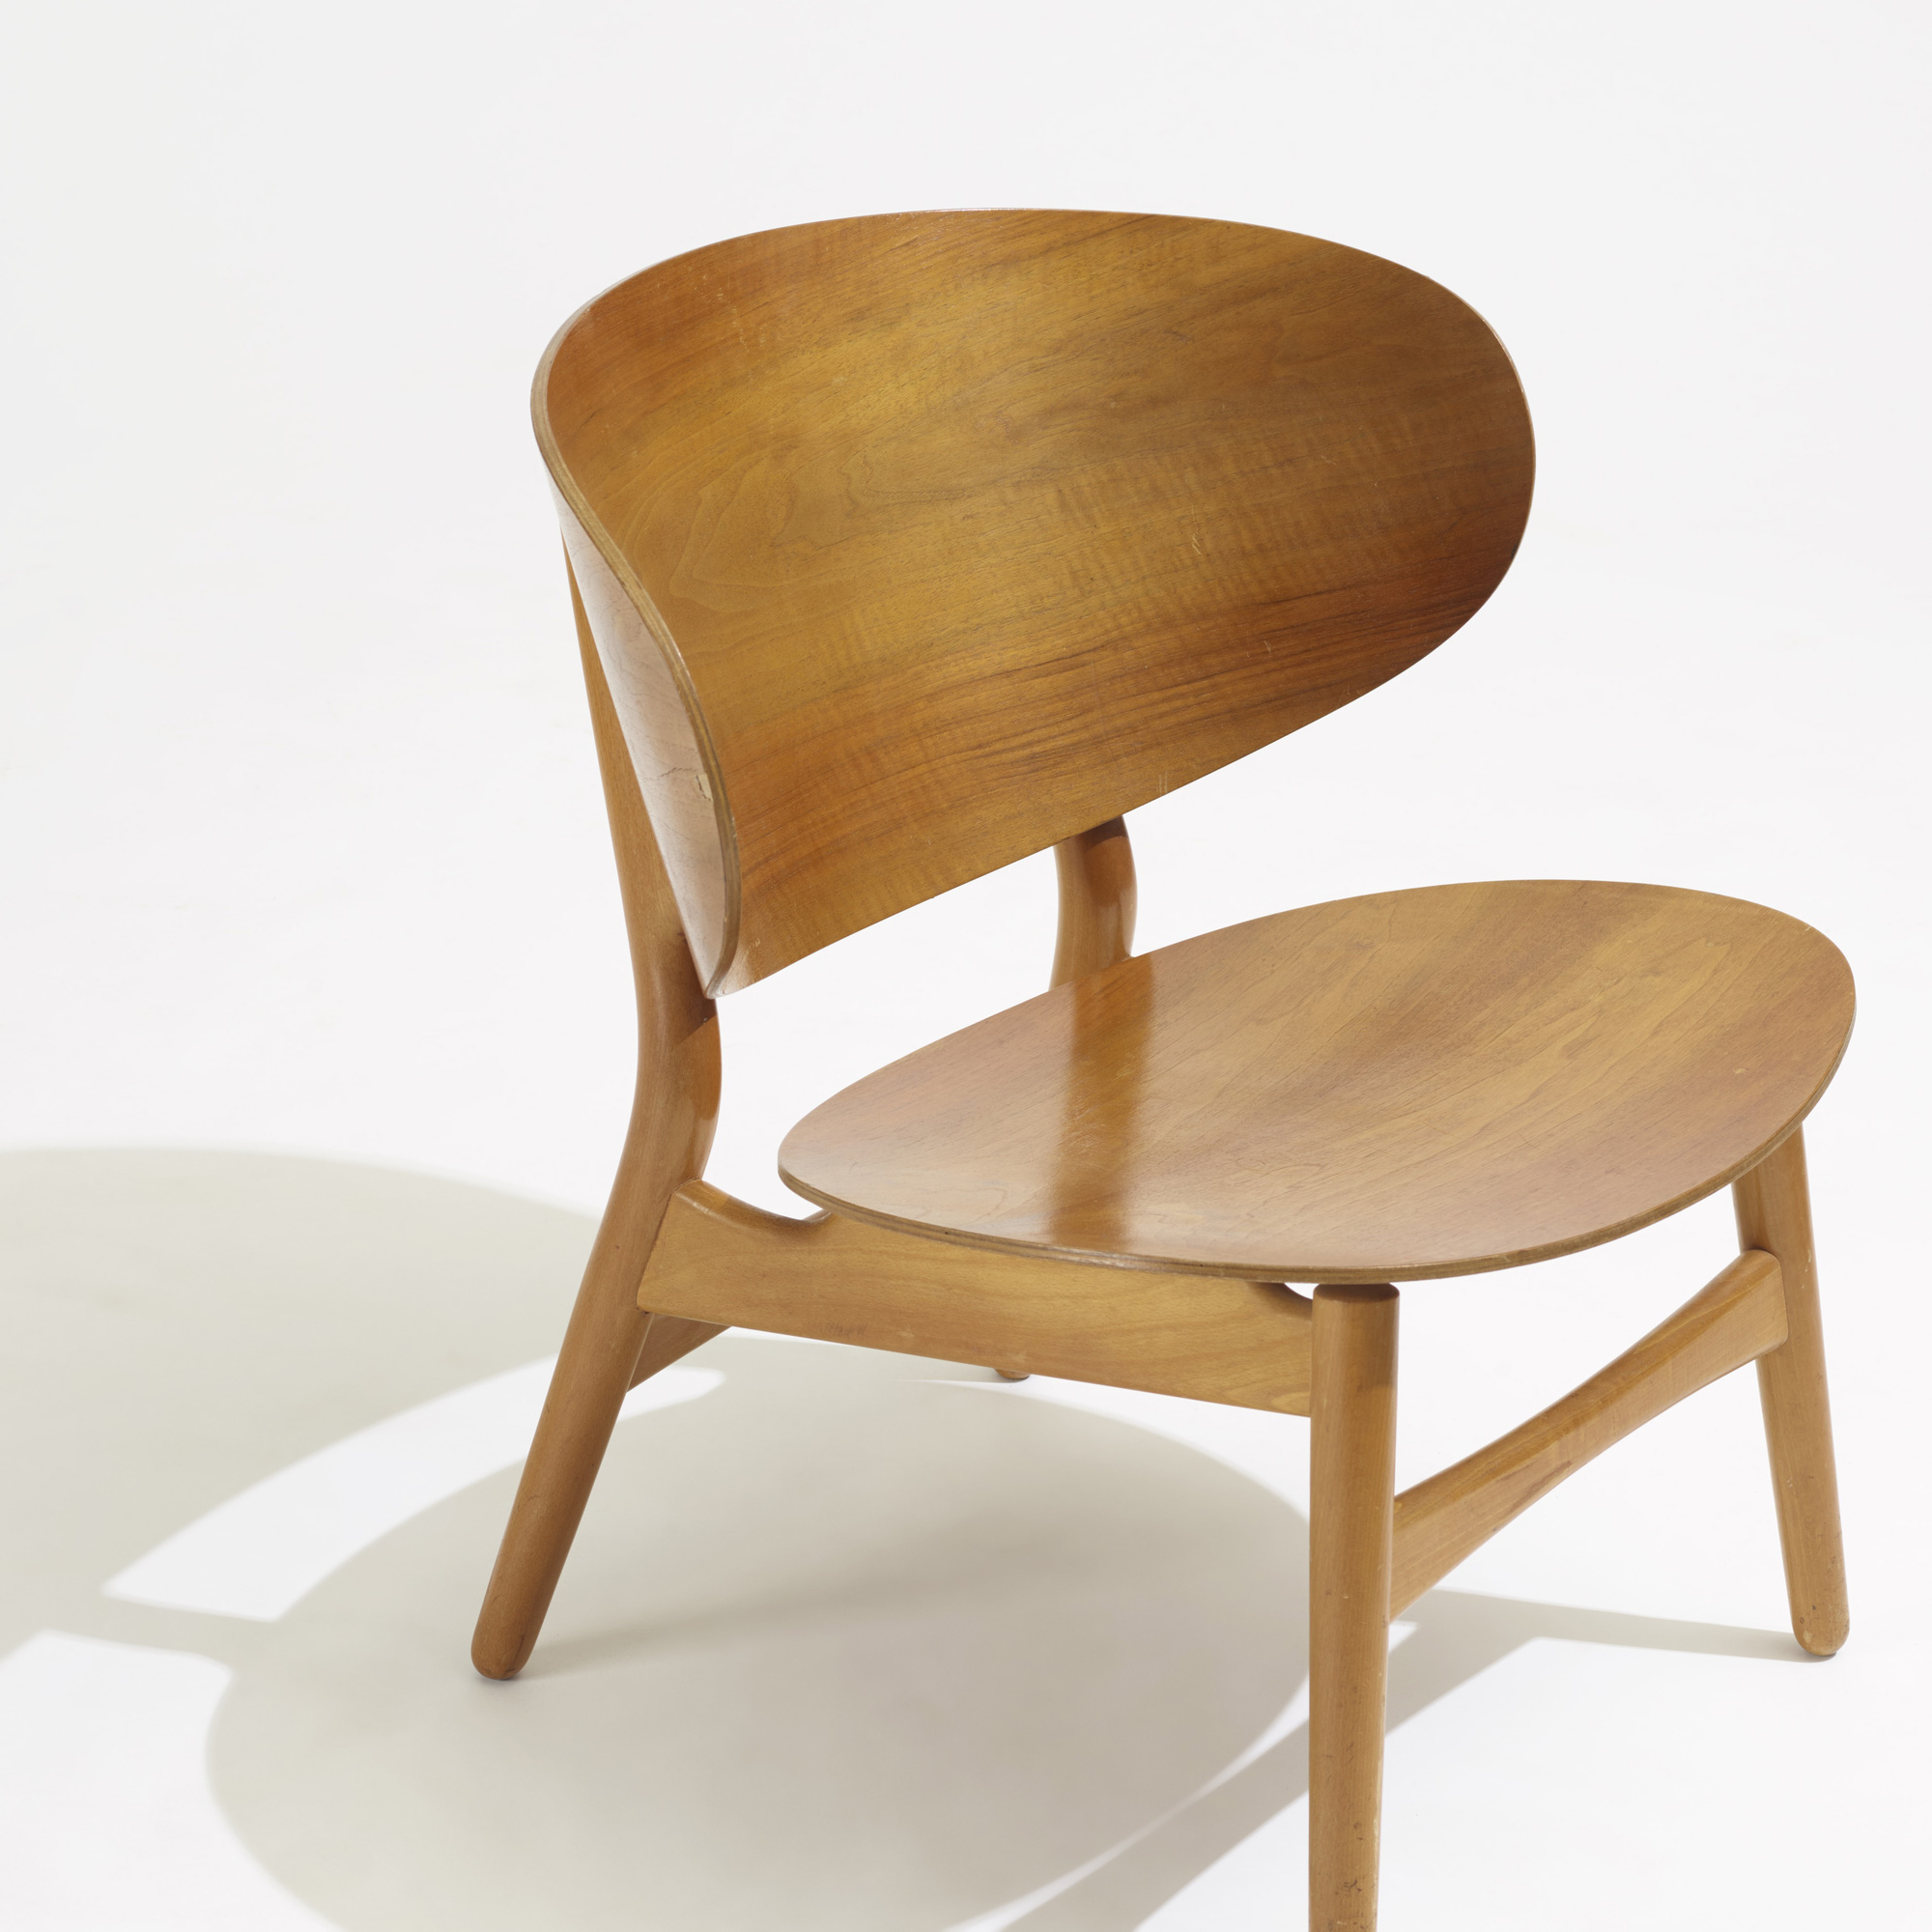 135 Hans J Wegner Shell chair Scandinavian Design 18 May